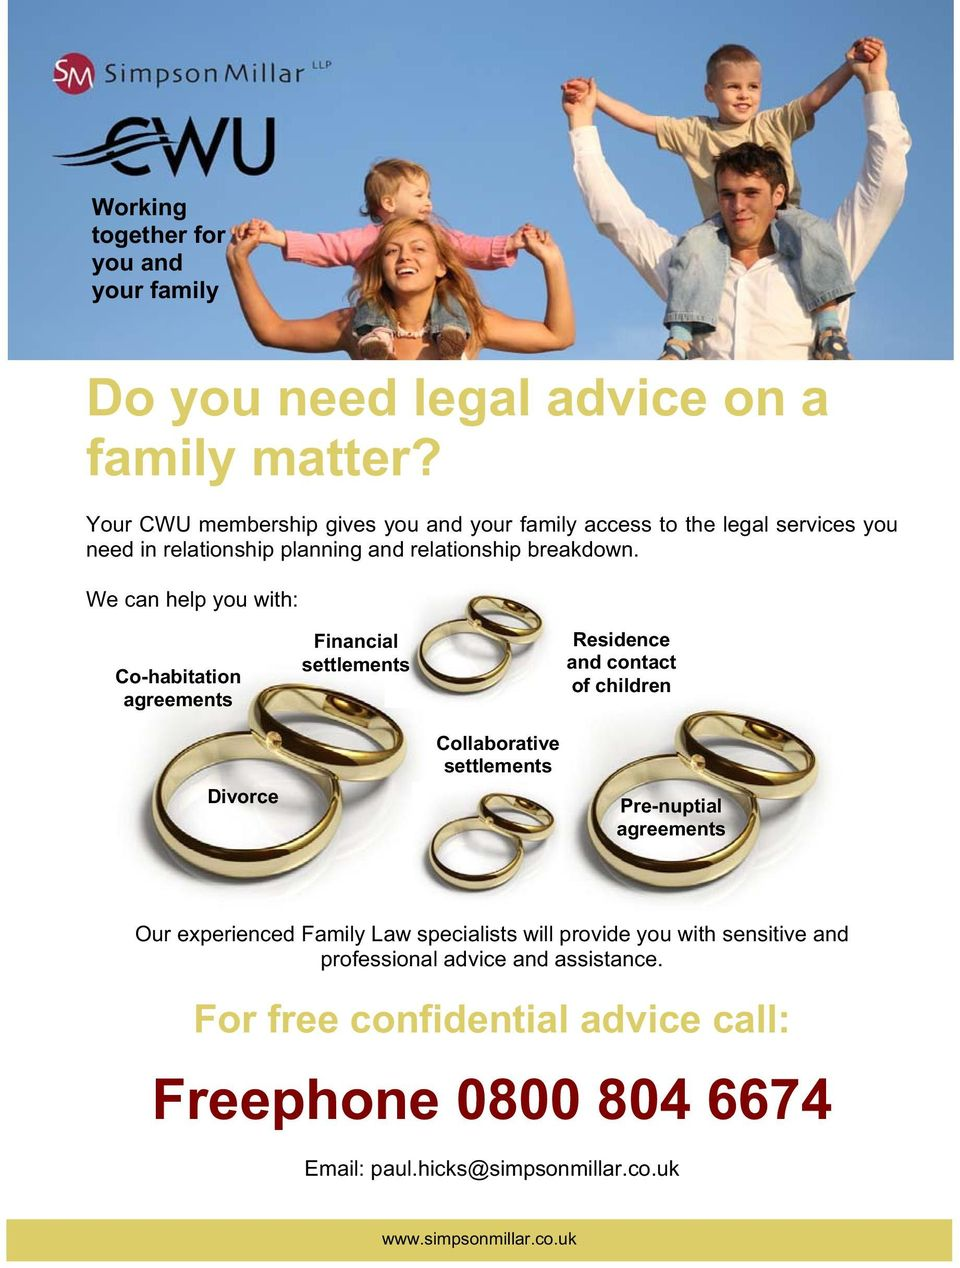 We can help you with: Co-habitation agreements Financial settlements Residence and contact of children Divorce Collaborative settlements